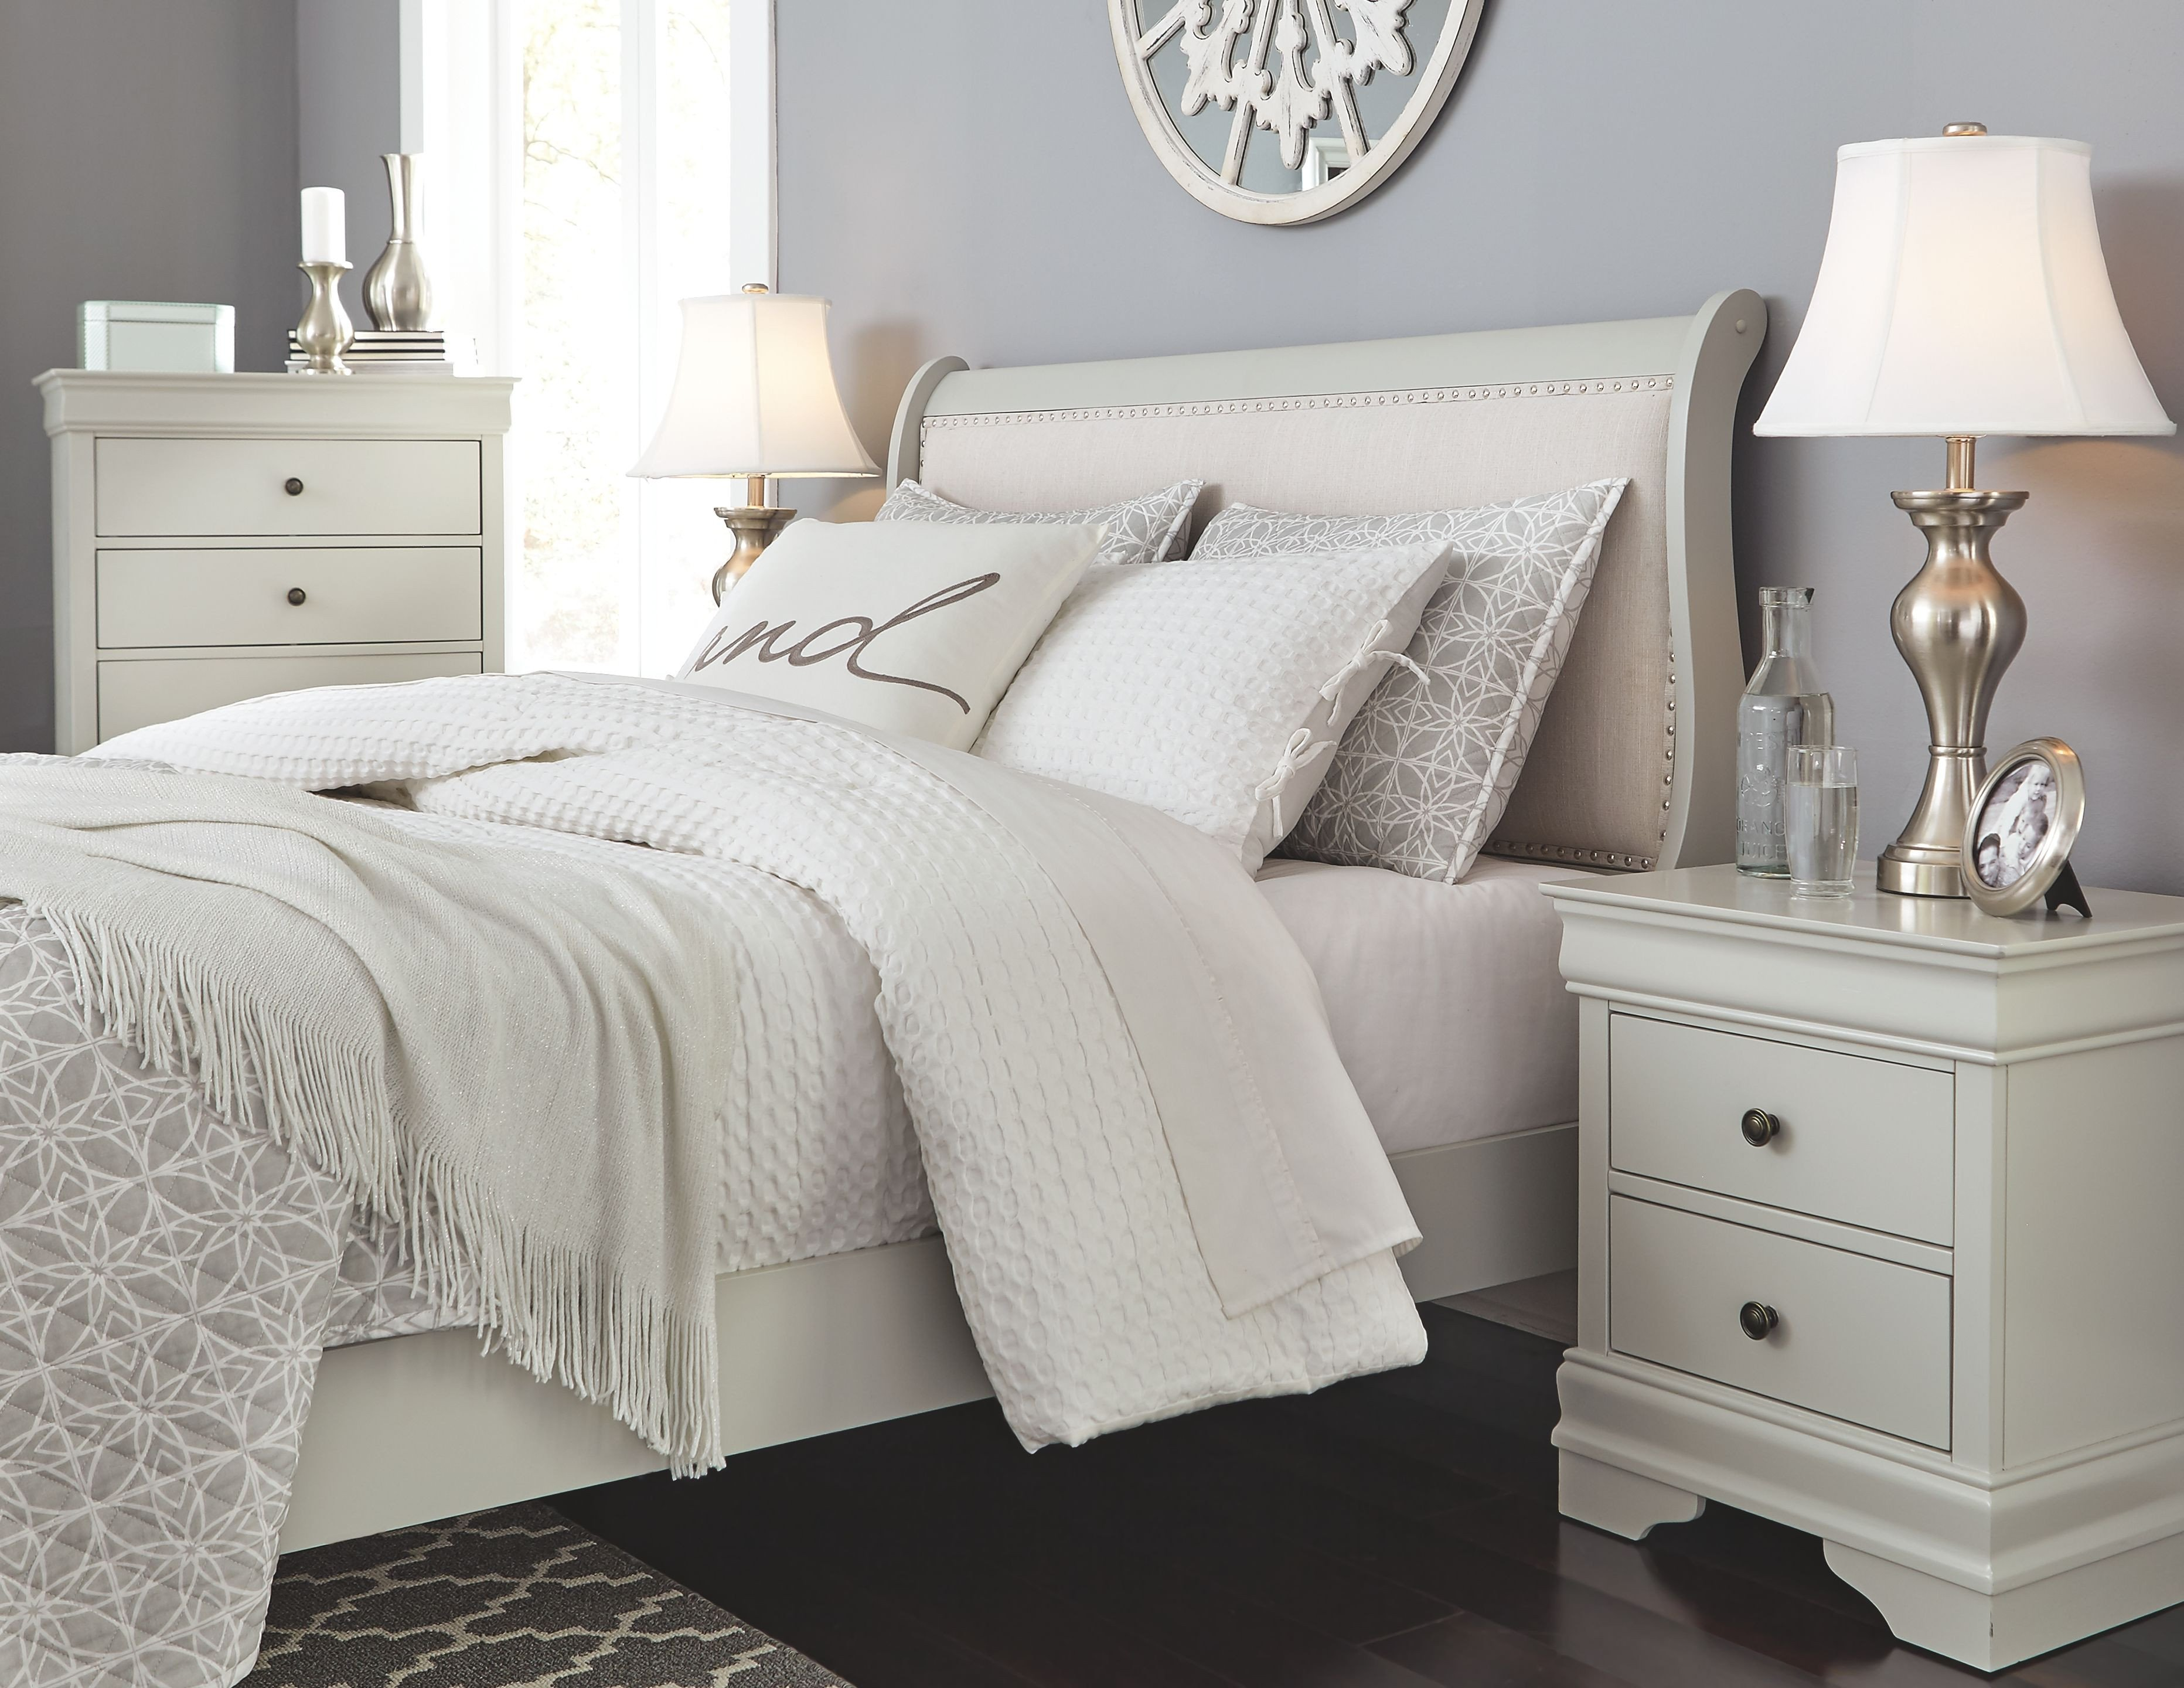 Cheap White Bedroom Furniture Set Beautiful Jorstad Full Bed with 2 Nightstands Gray